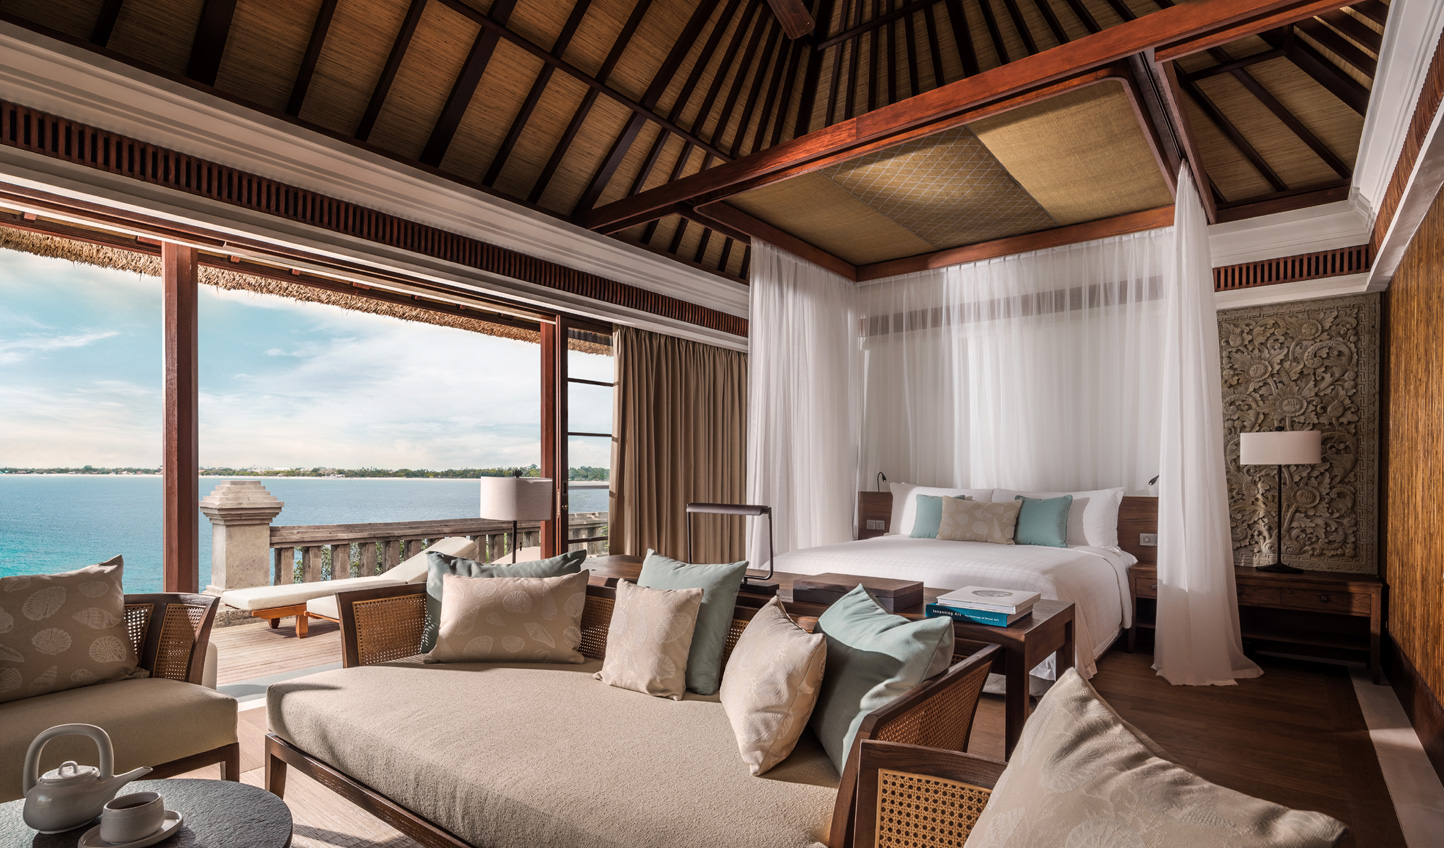 Swathed in luxurious fabrics, the villas are fit for royalty